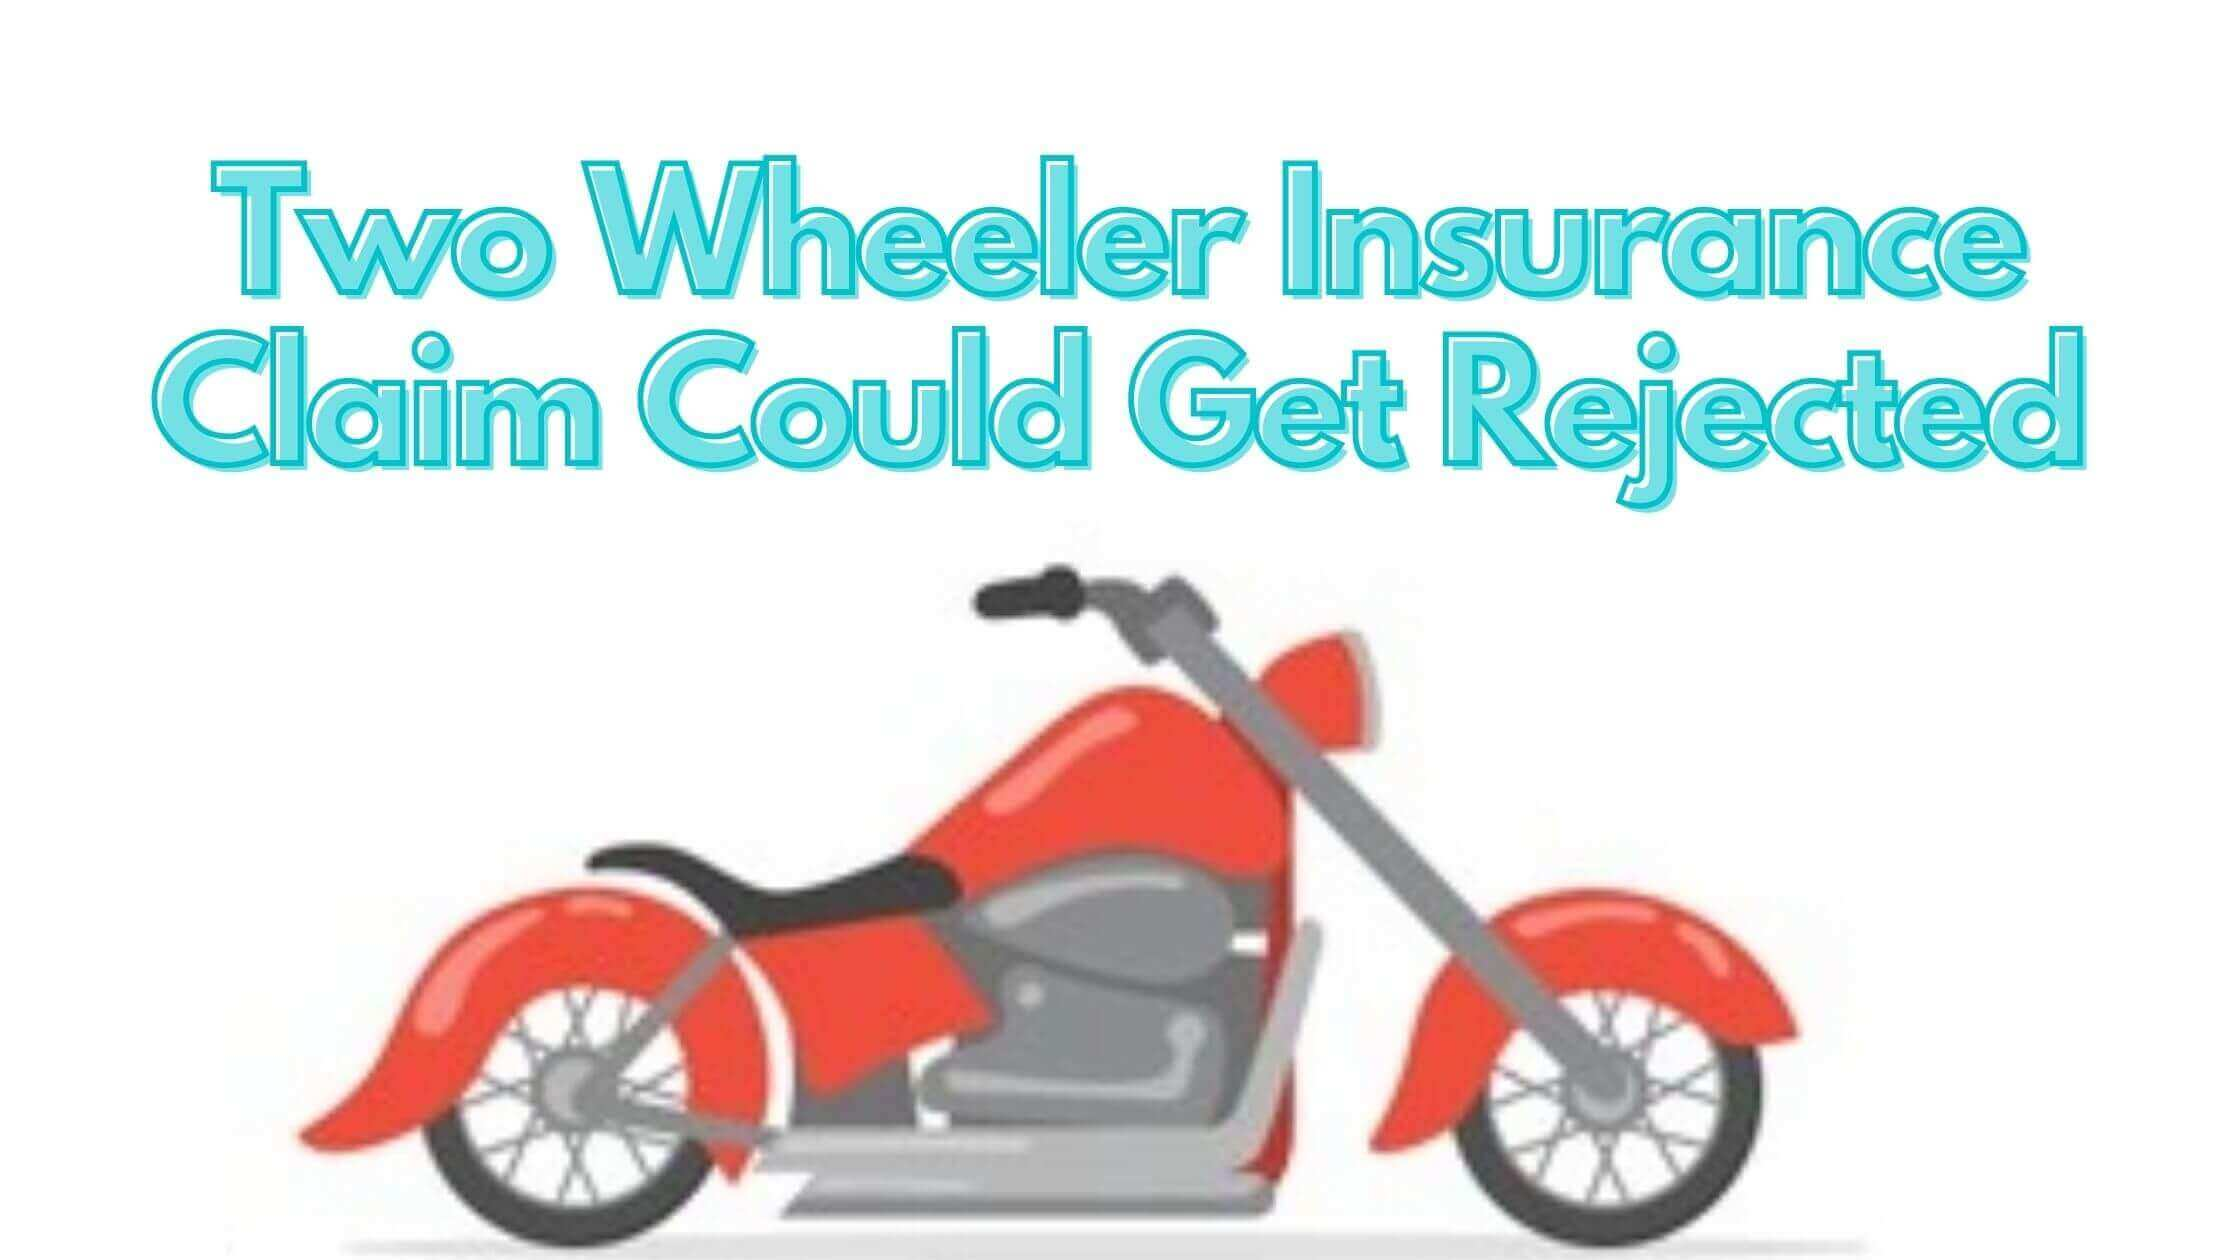 Your Two Wheeler Insurance Claim Could Get Rejected for the Following Reasons